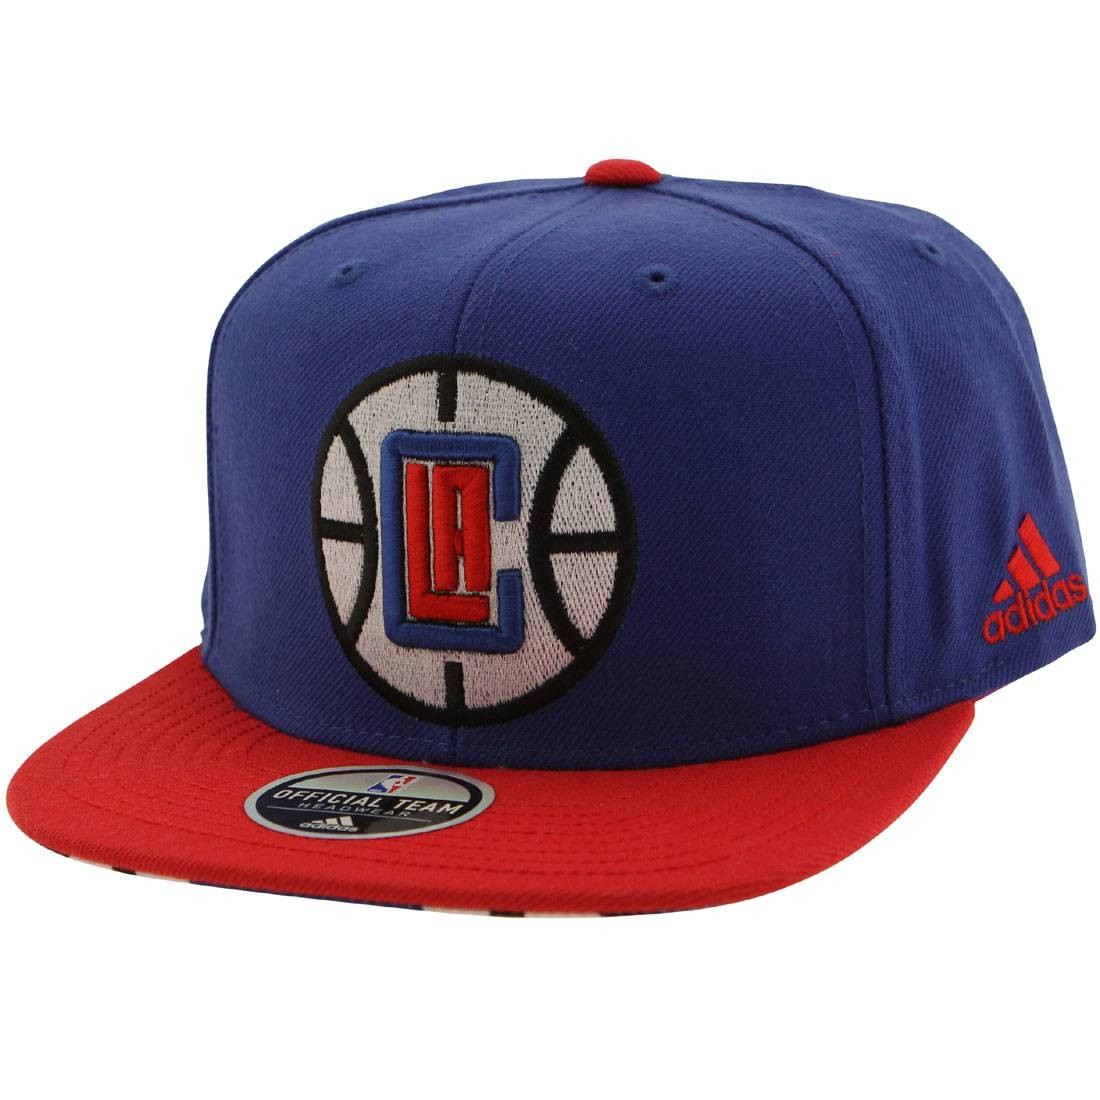 9530d9993f58b Adidas NBA Los Angeles Clippers On Court Snapback Cap blue red